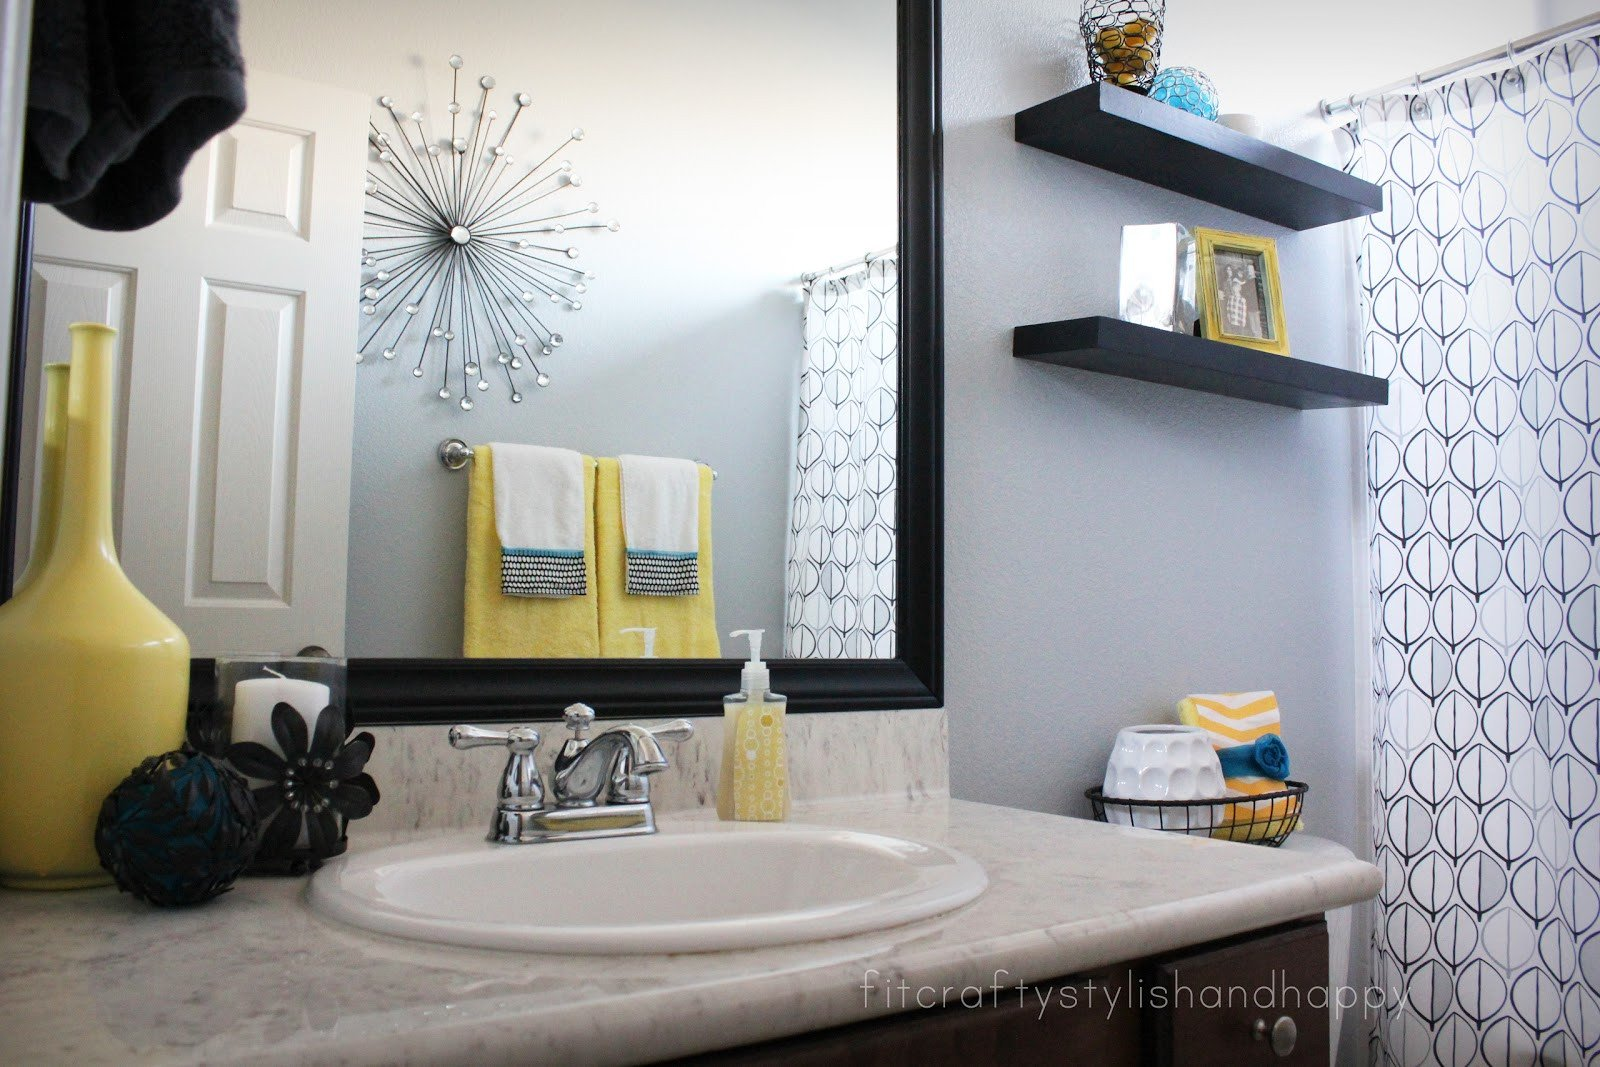 Blue and Yellow Bathroom Decor Fresh Fit Crafty Stylish and Happy Guest Bathroom Makeover